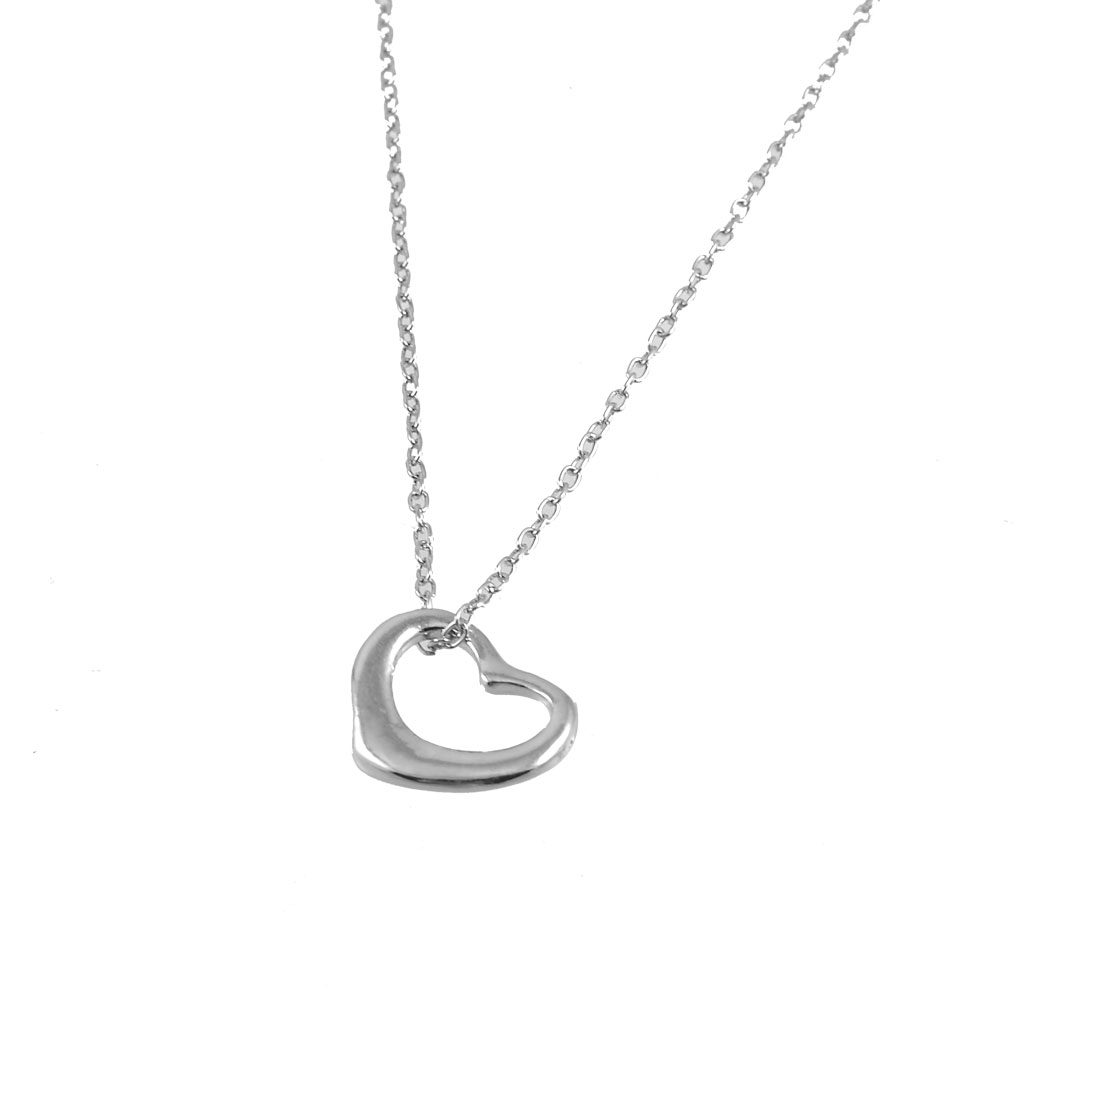 Ladies Jewerly Silver Tone Hollow Heart Pendant Metal Chain Necklace